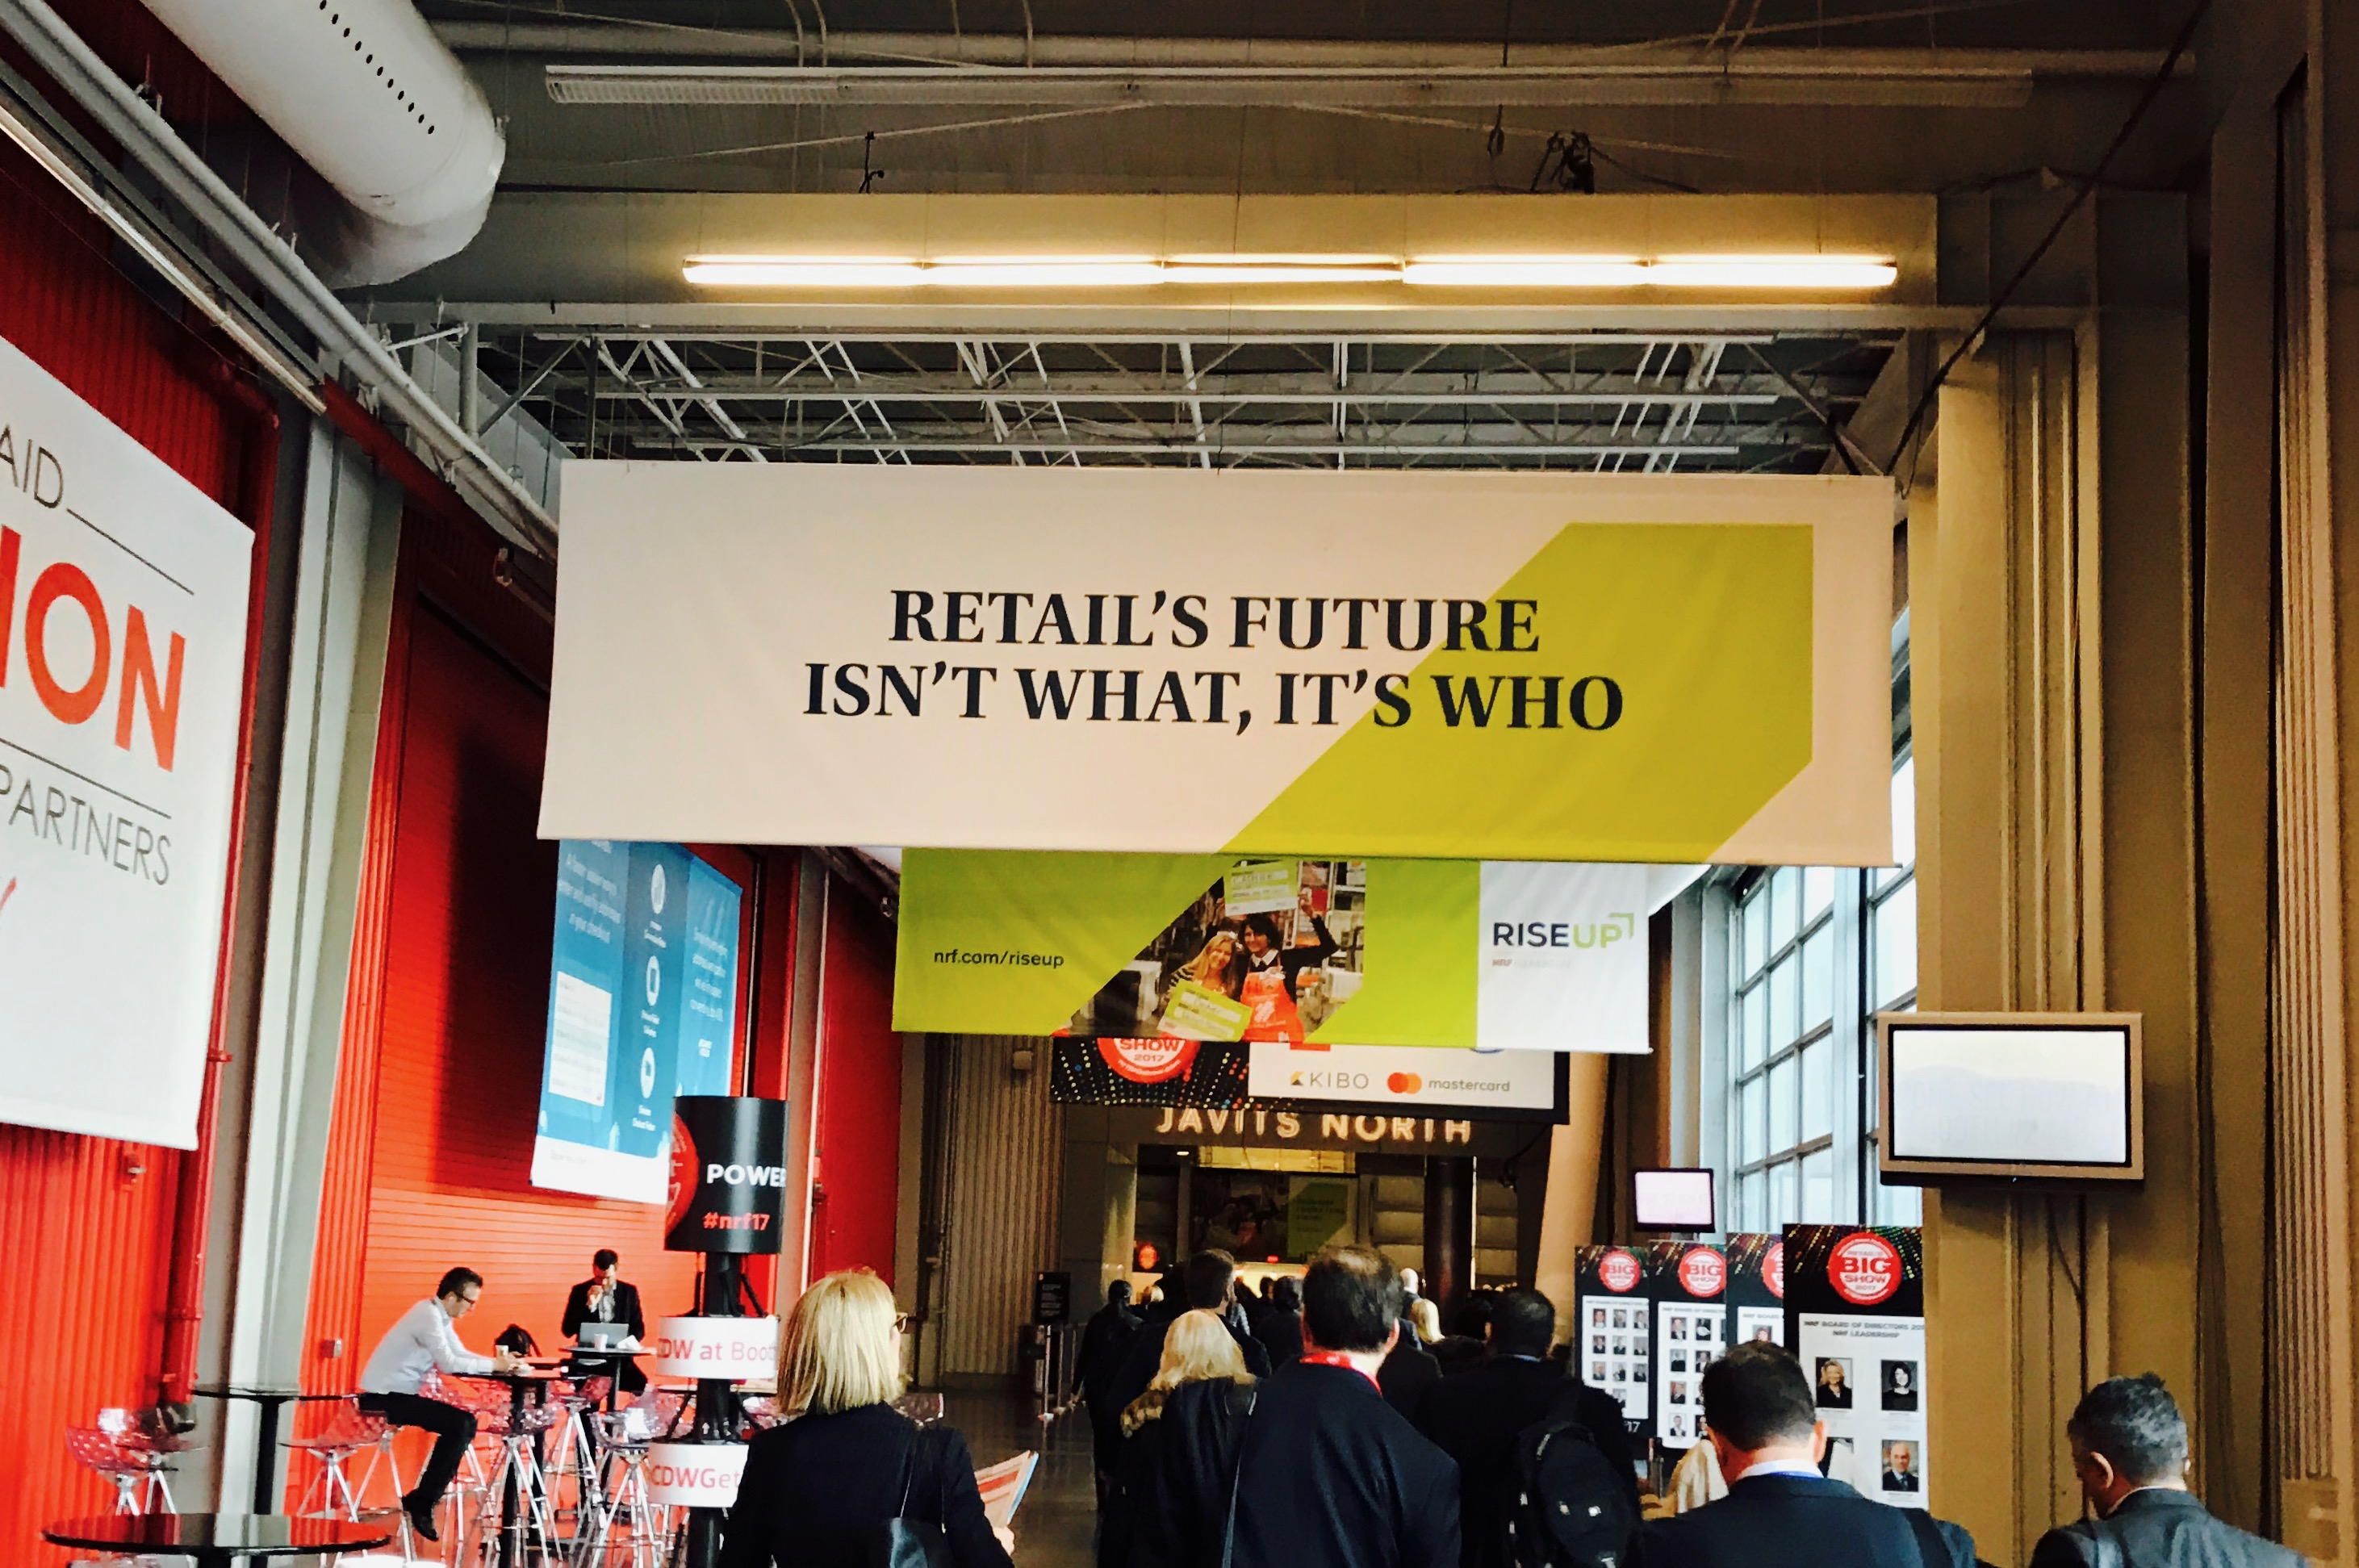 Human Insights From the National Retail Foundation's BIG Show